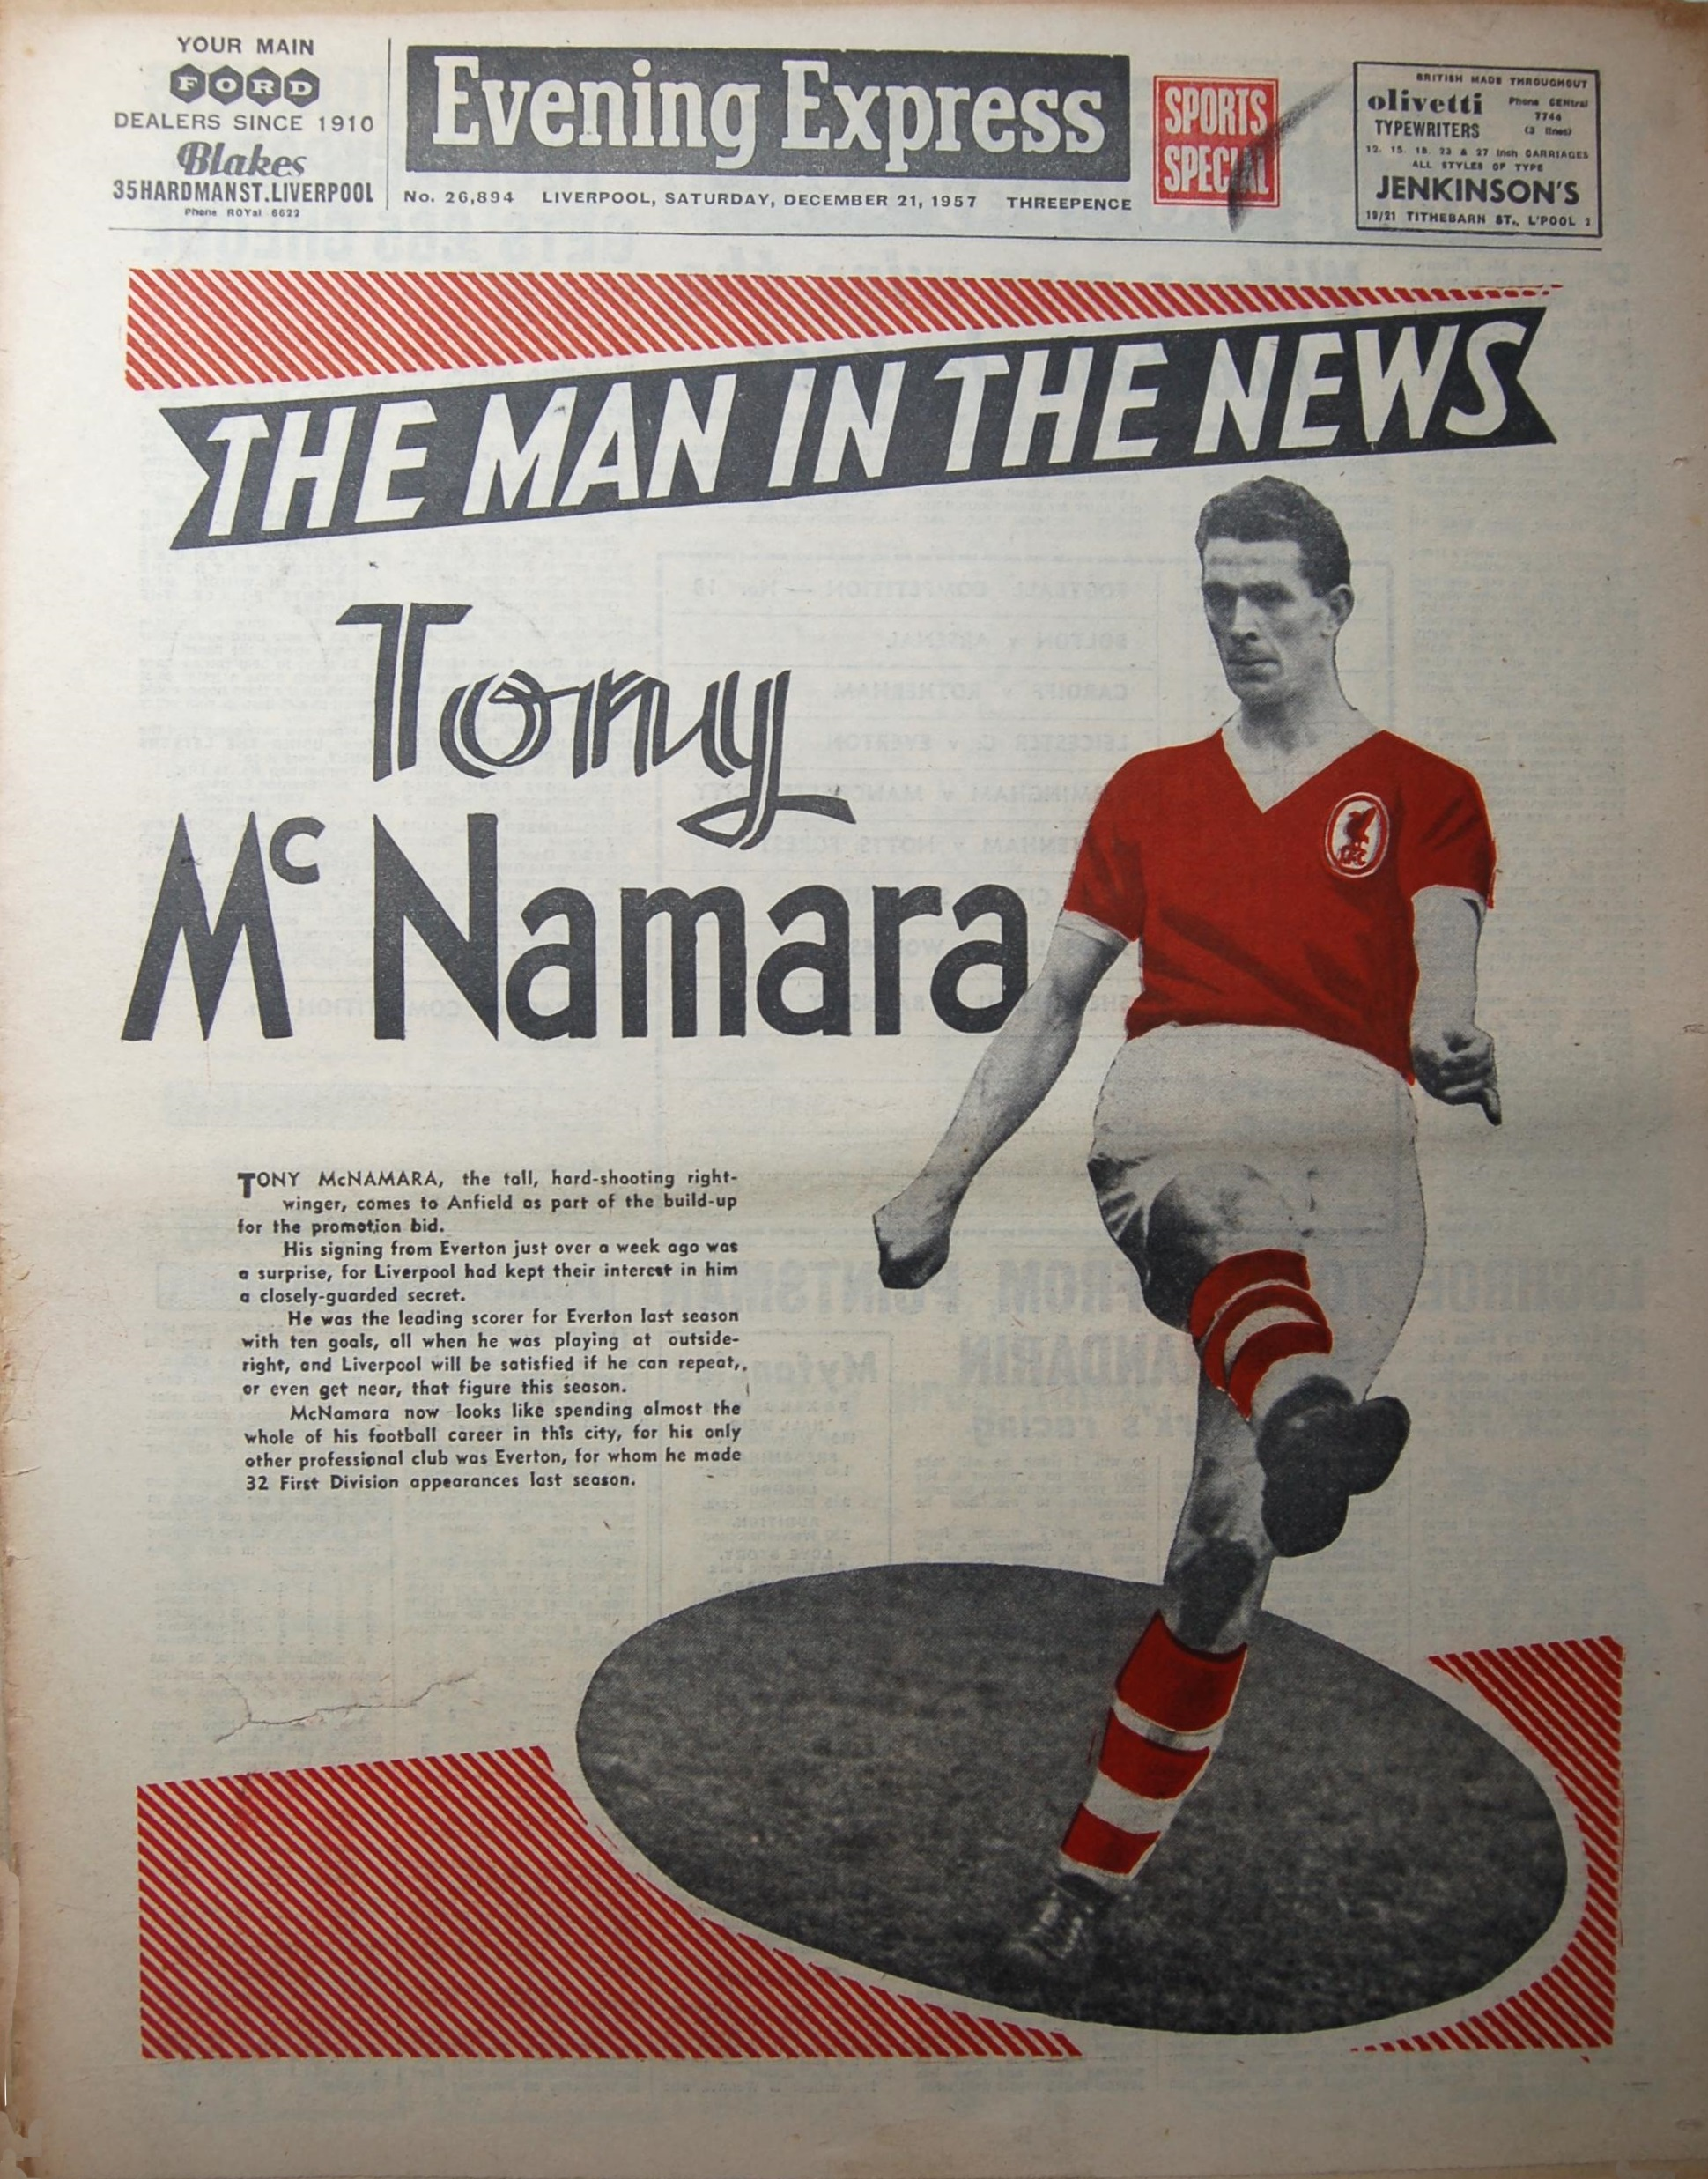 McNamara on the cover of the Evening Express on 21 December 1957